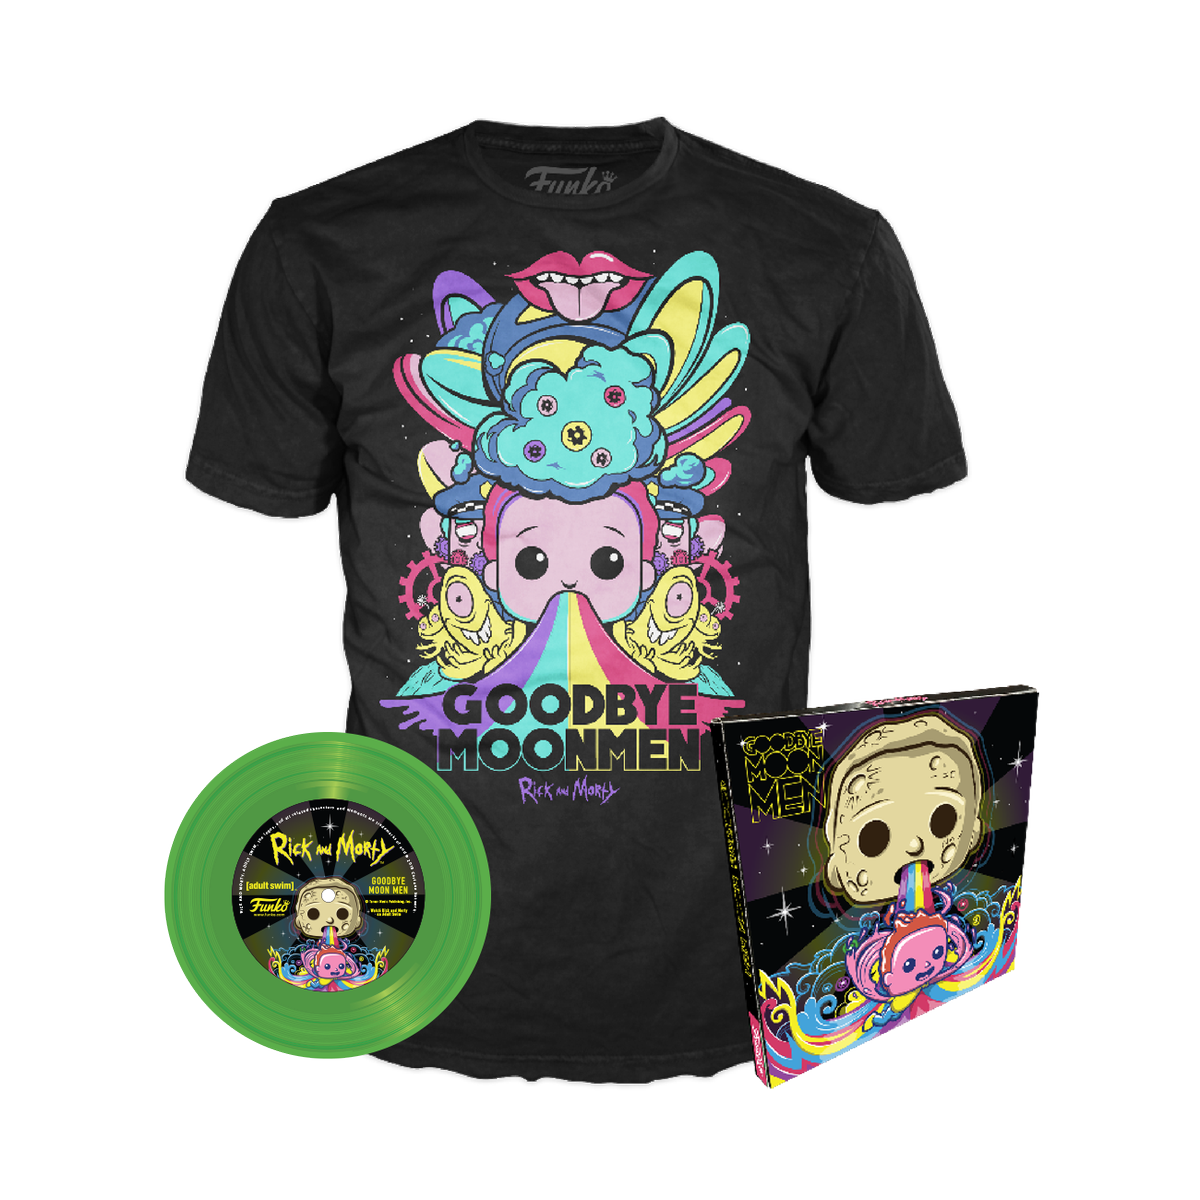 Here&#39;s a closer look at the SDCC 2018 exclusive Rick and Morty Collector Box!  https://www. funko.com/blog/article/a -closer-look-at-the-sdcc-2018-exclusive-rick-and-morty-collector-box &nbsp; … <br>http://pic.twitter.com/uWHZ24IEG4